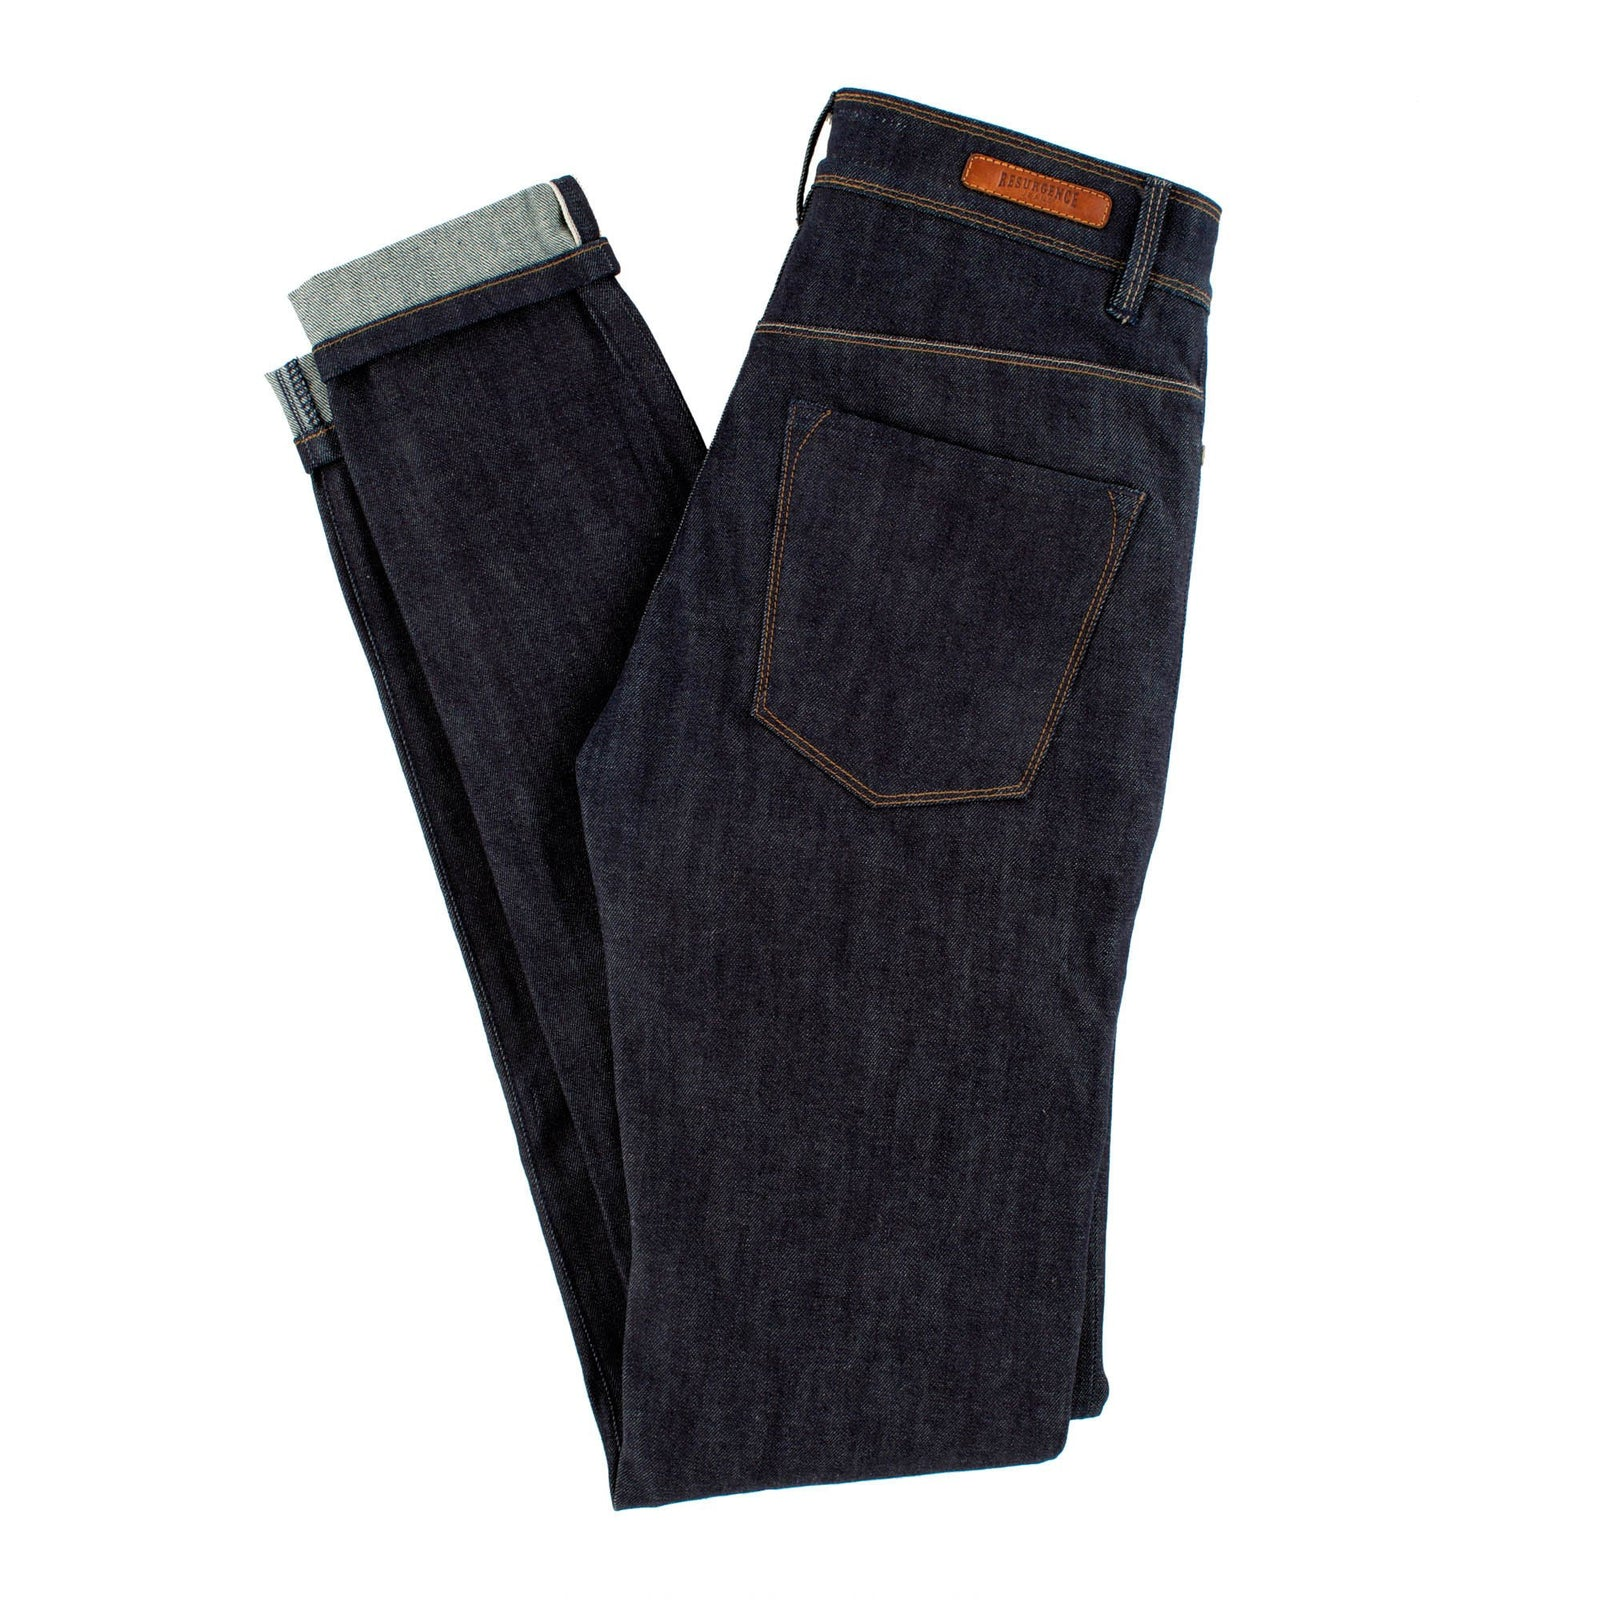 Resurgence Gear® Cafe Racer Ladies Raw Selvedge Protective Motorcycle Jeans